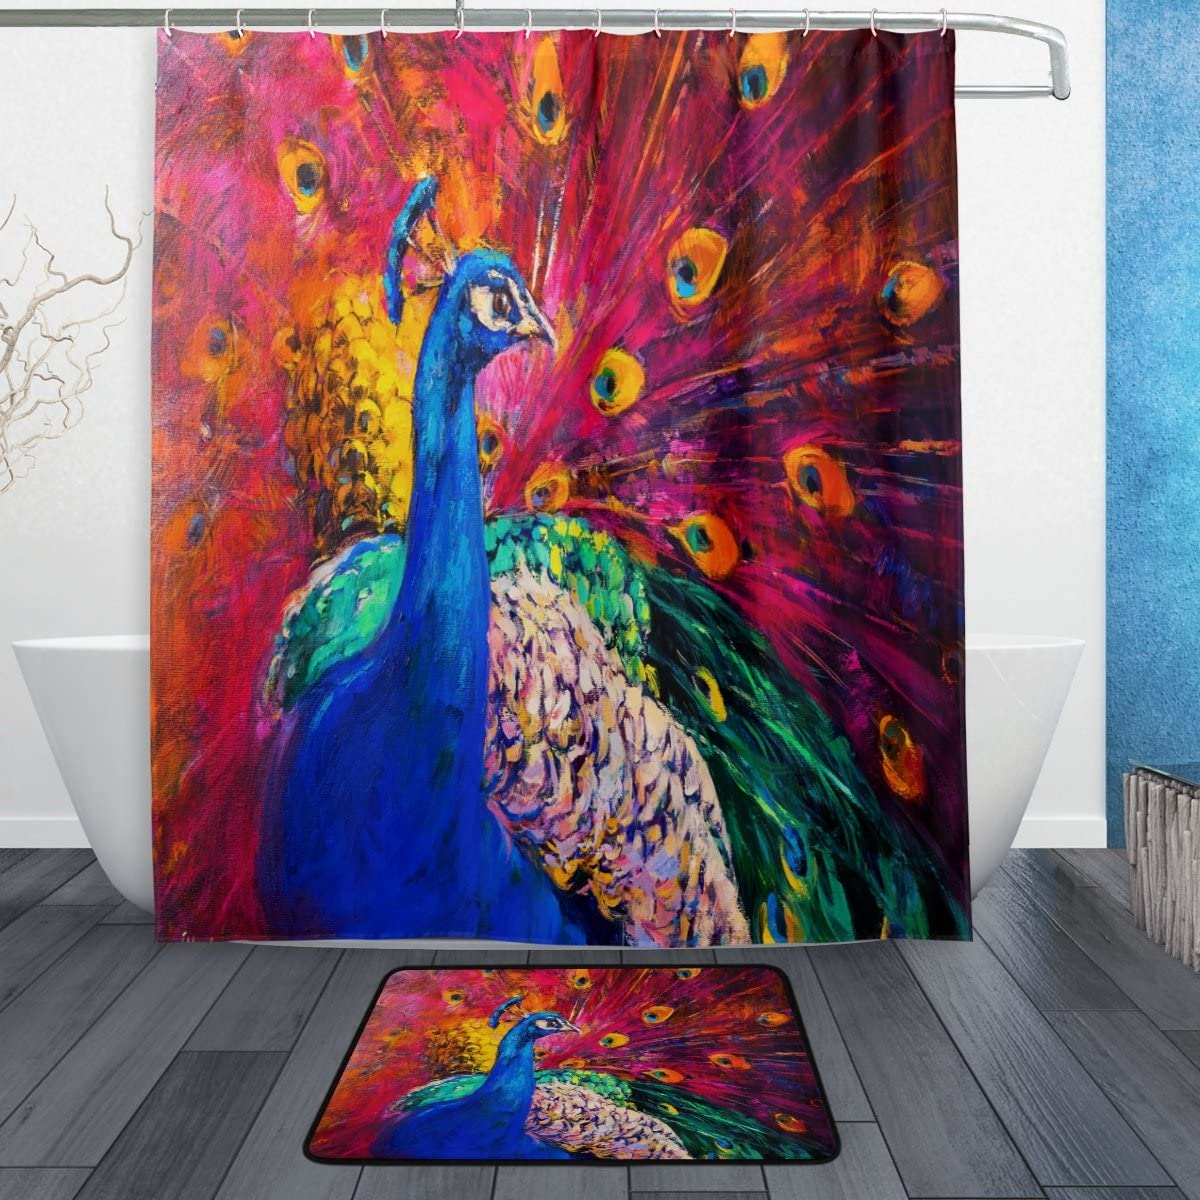 Naanle Oil Painting Multicolored Peacock Waterproof Polyester Fabric Shower Curtain (60